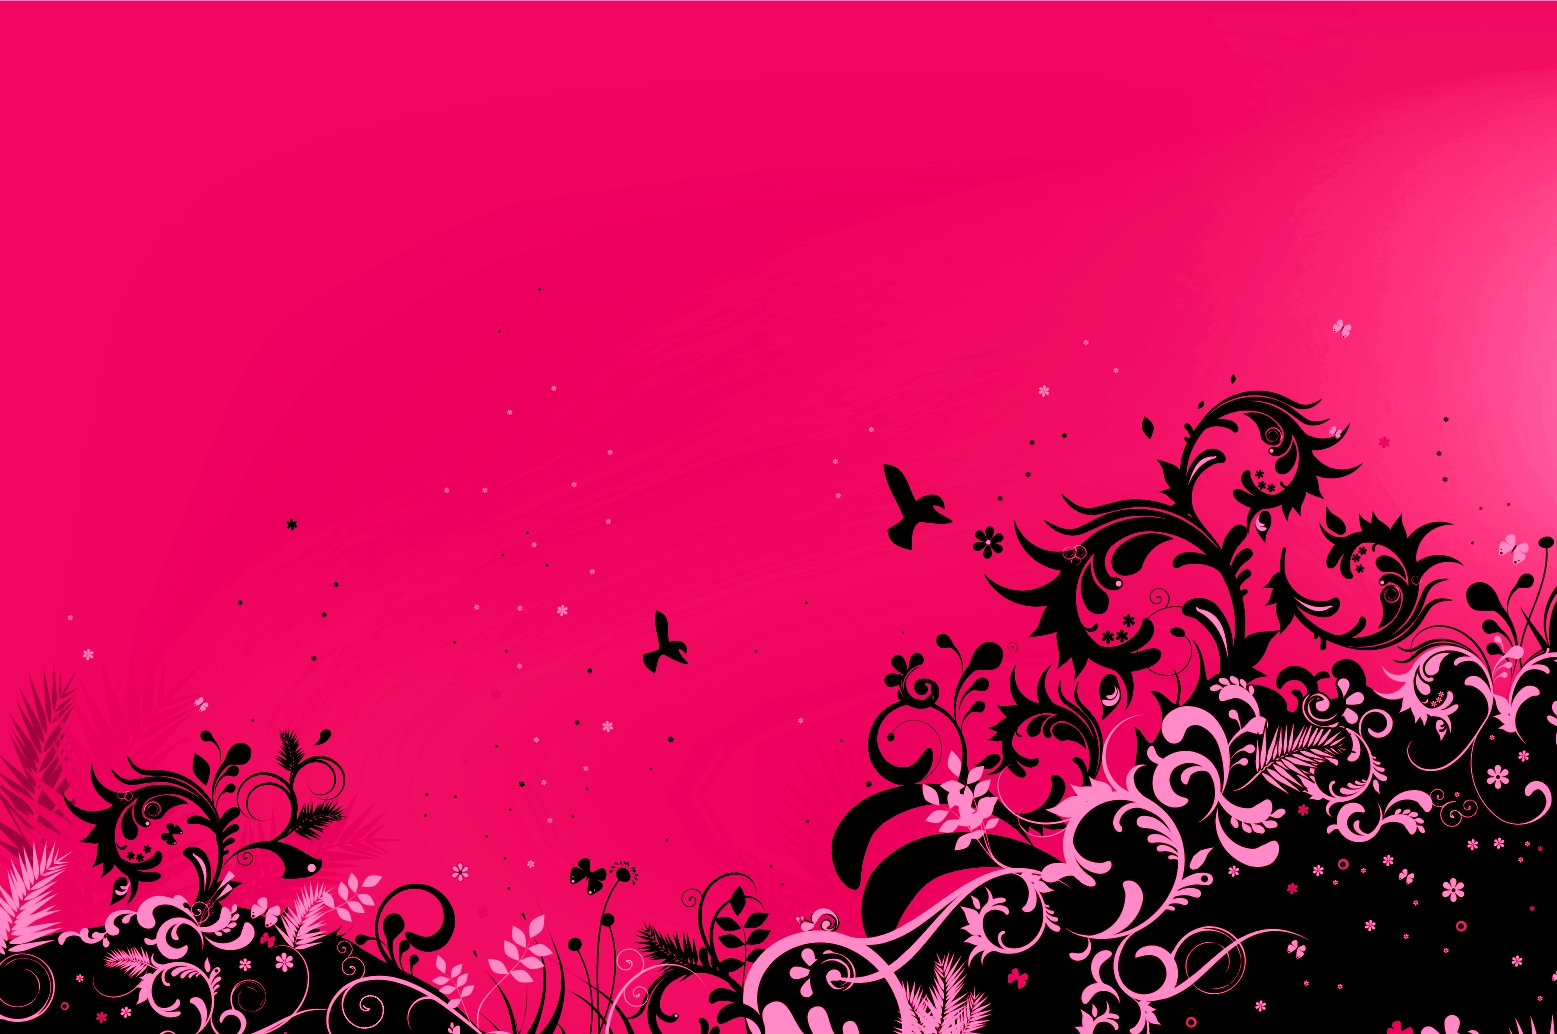 hot pink wallpapers for desktop - photo #19